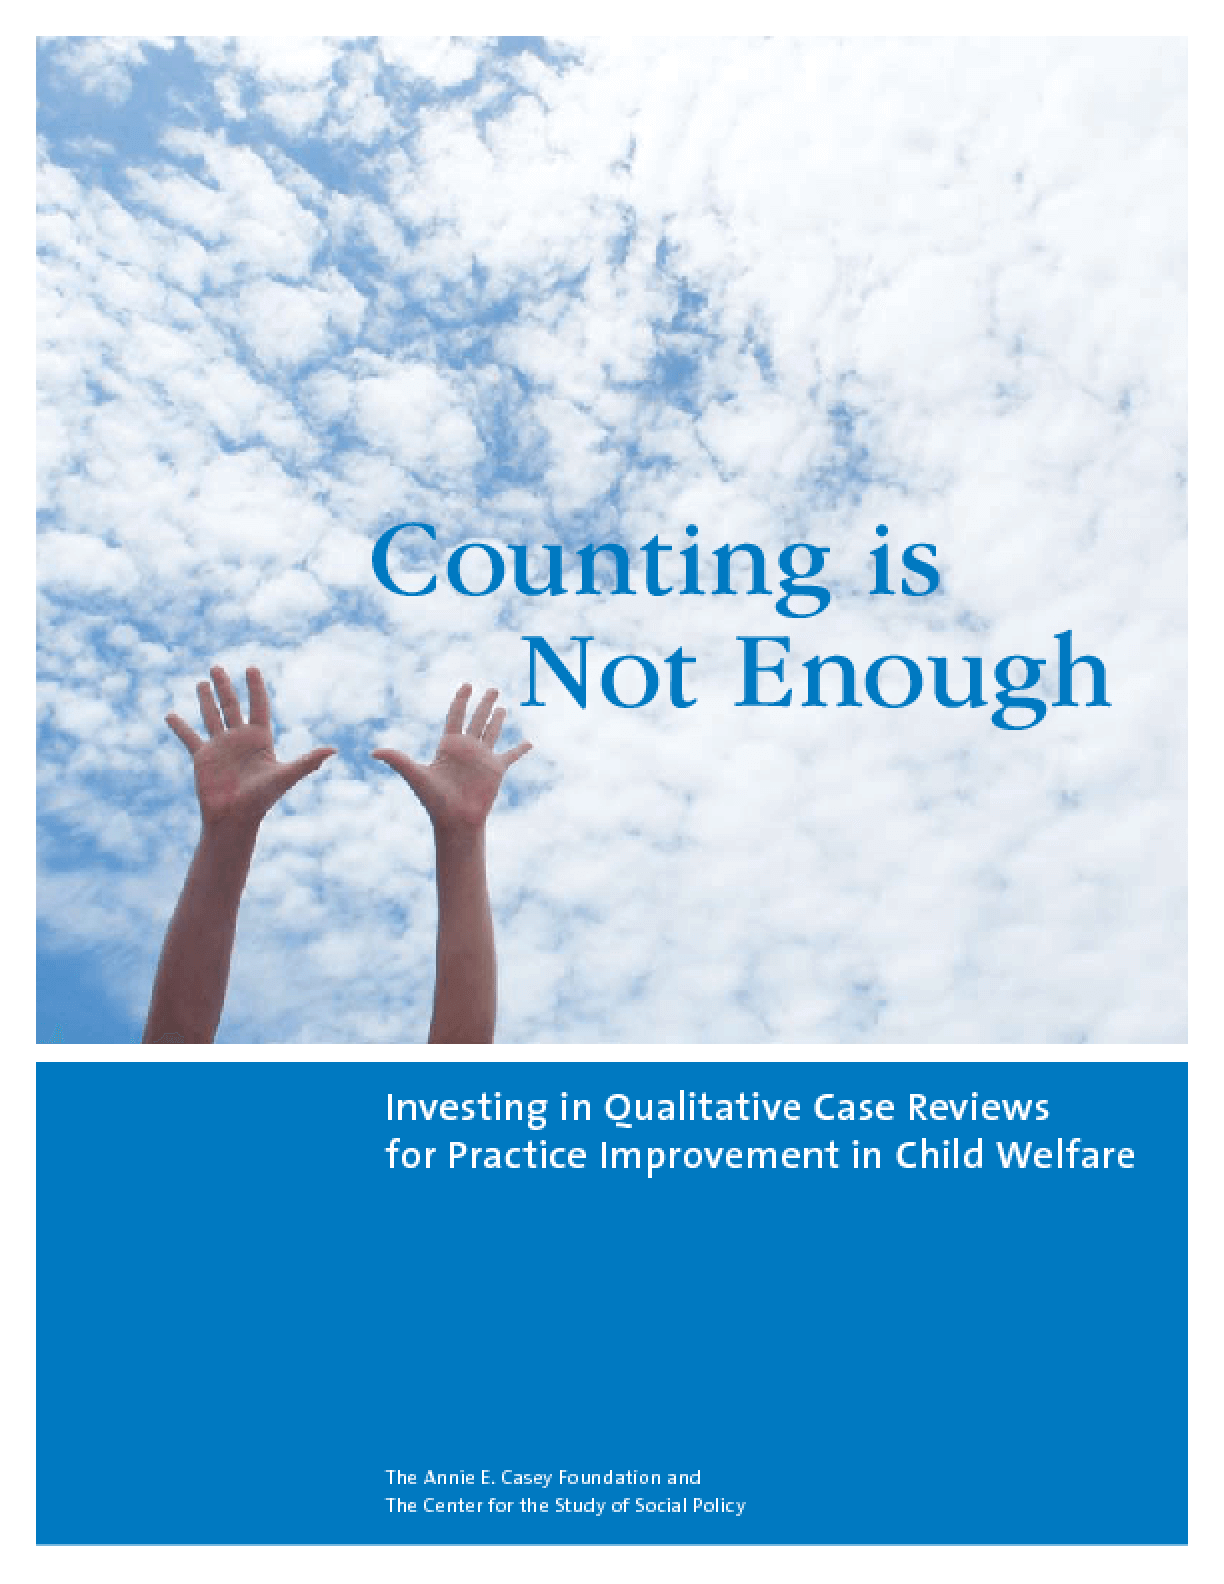 Counting Is Not Enough: Investing in Qualitative Case Reviews for Practice Improvement in Child Welfare